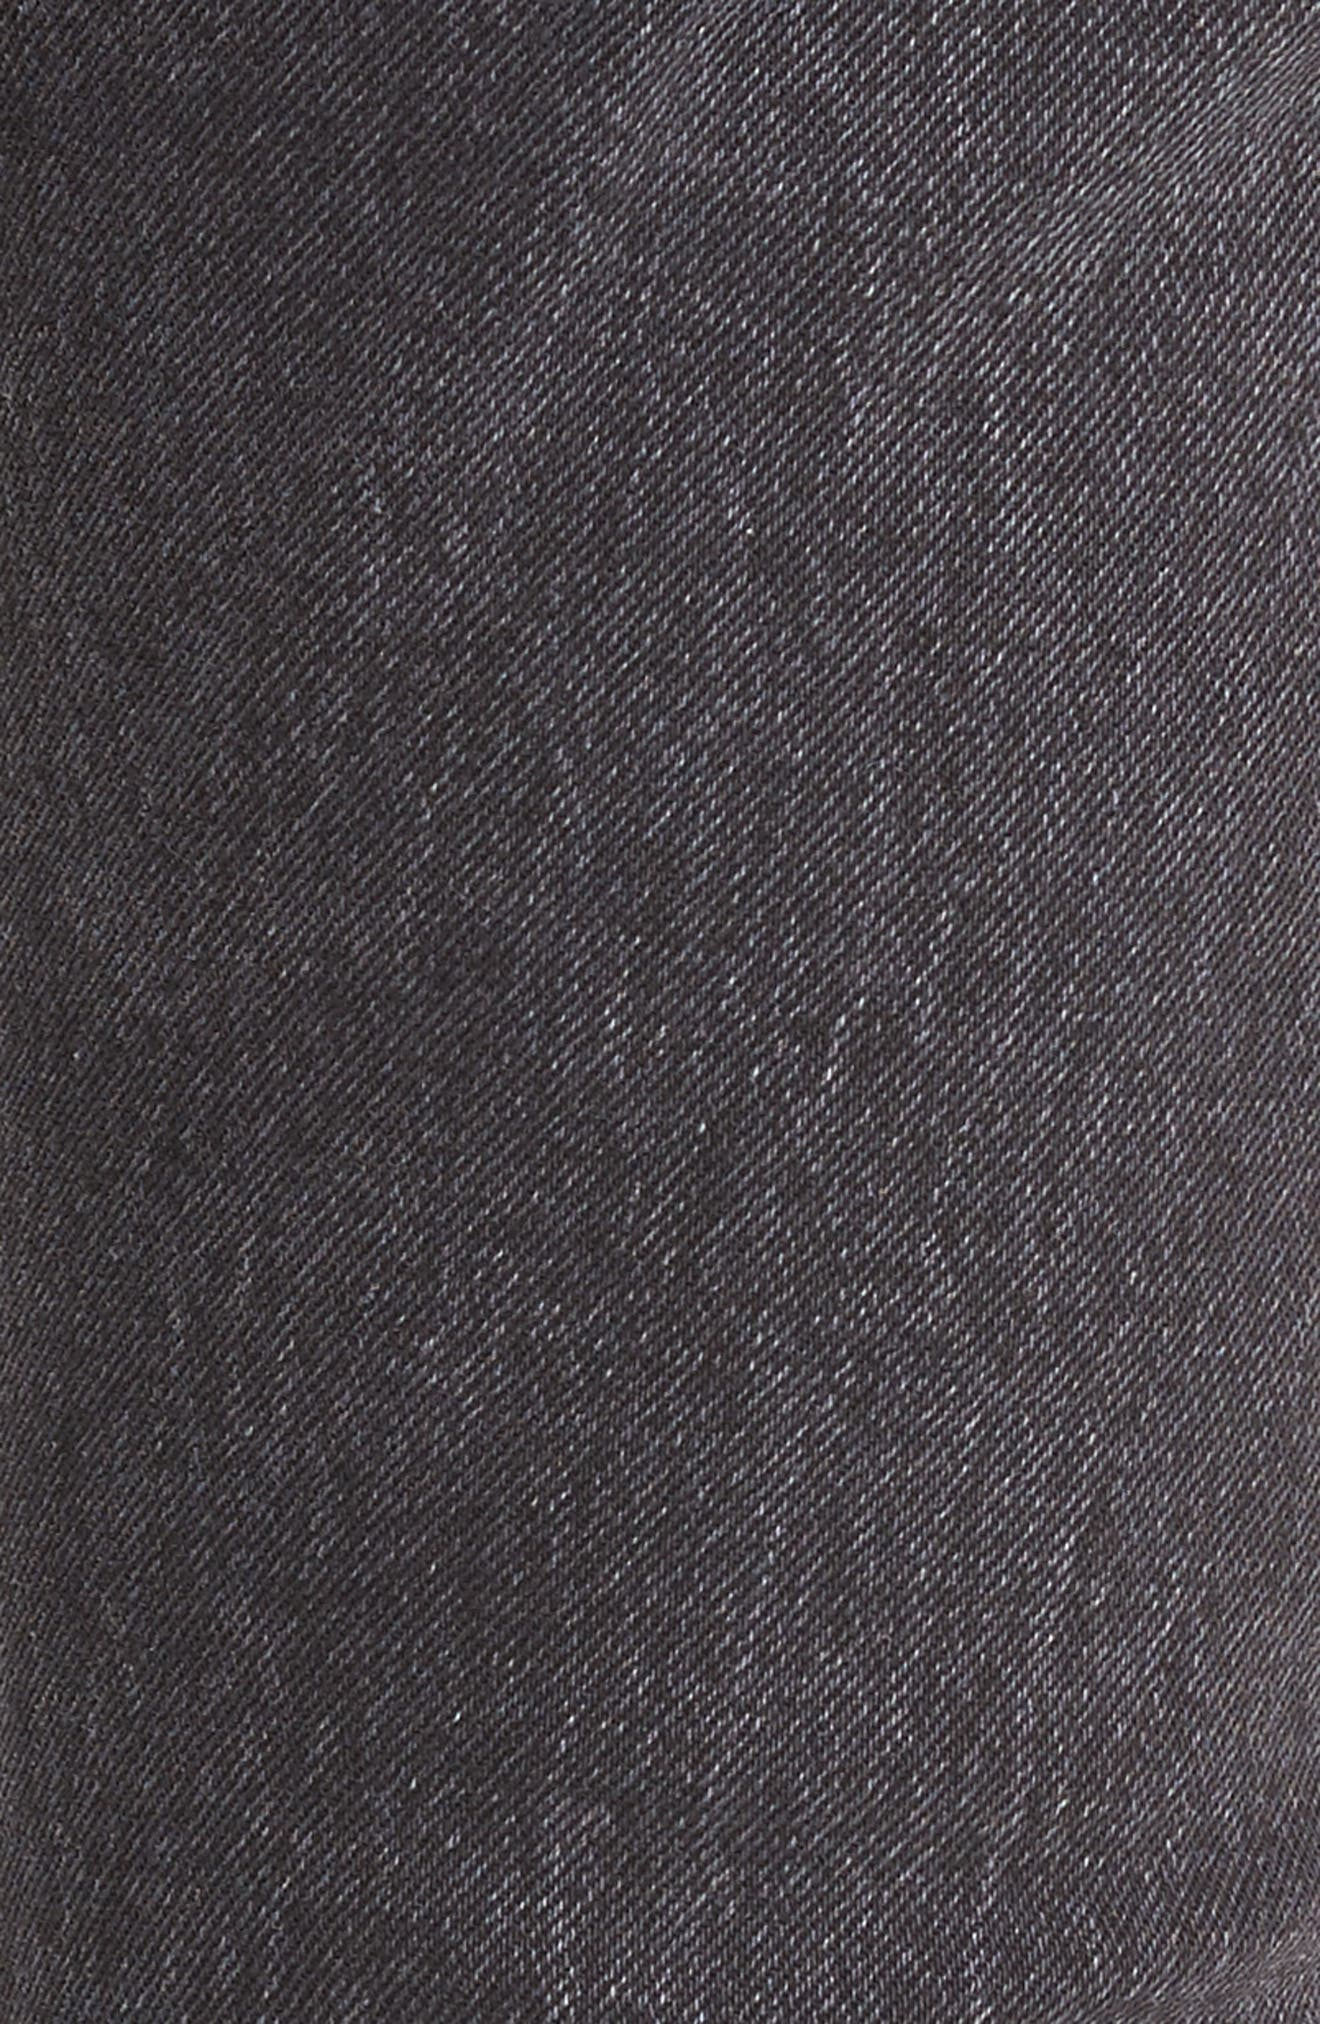 501<sup>®</sup> High Waist Ripped Skinny Jeans,                             Alternate thumbnail 6, color,                             001